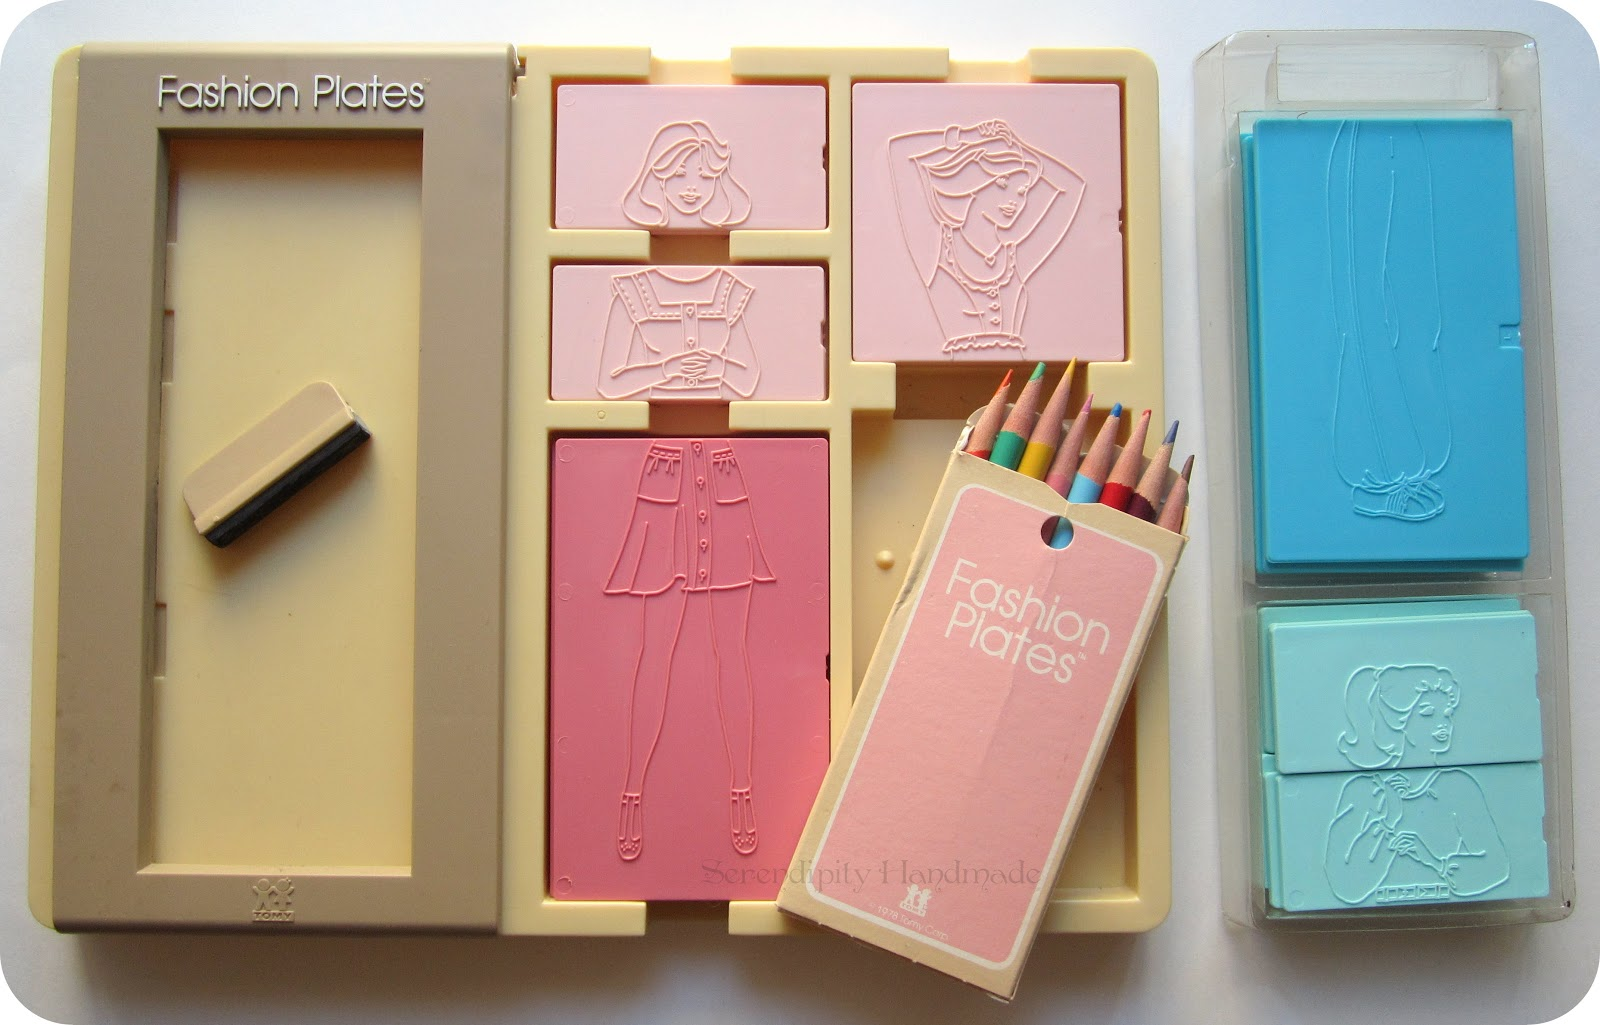 Barbie Fashion Plates Rub Coloring Fashion Plates was first